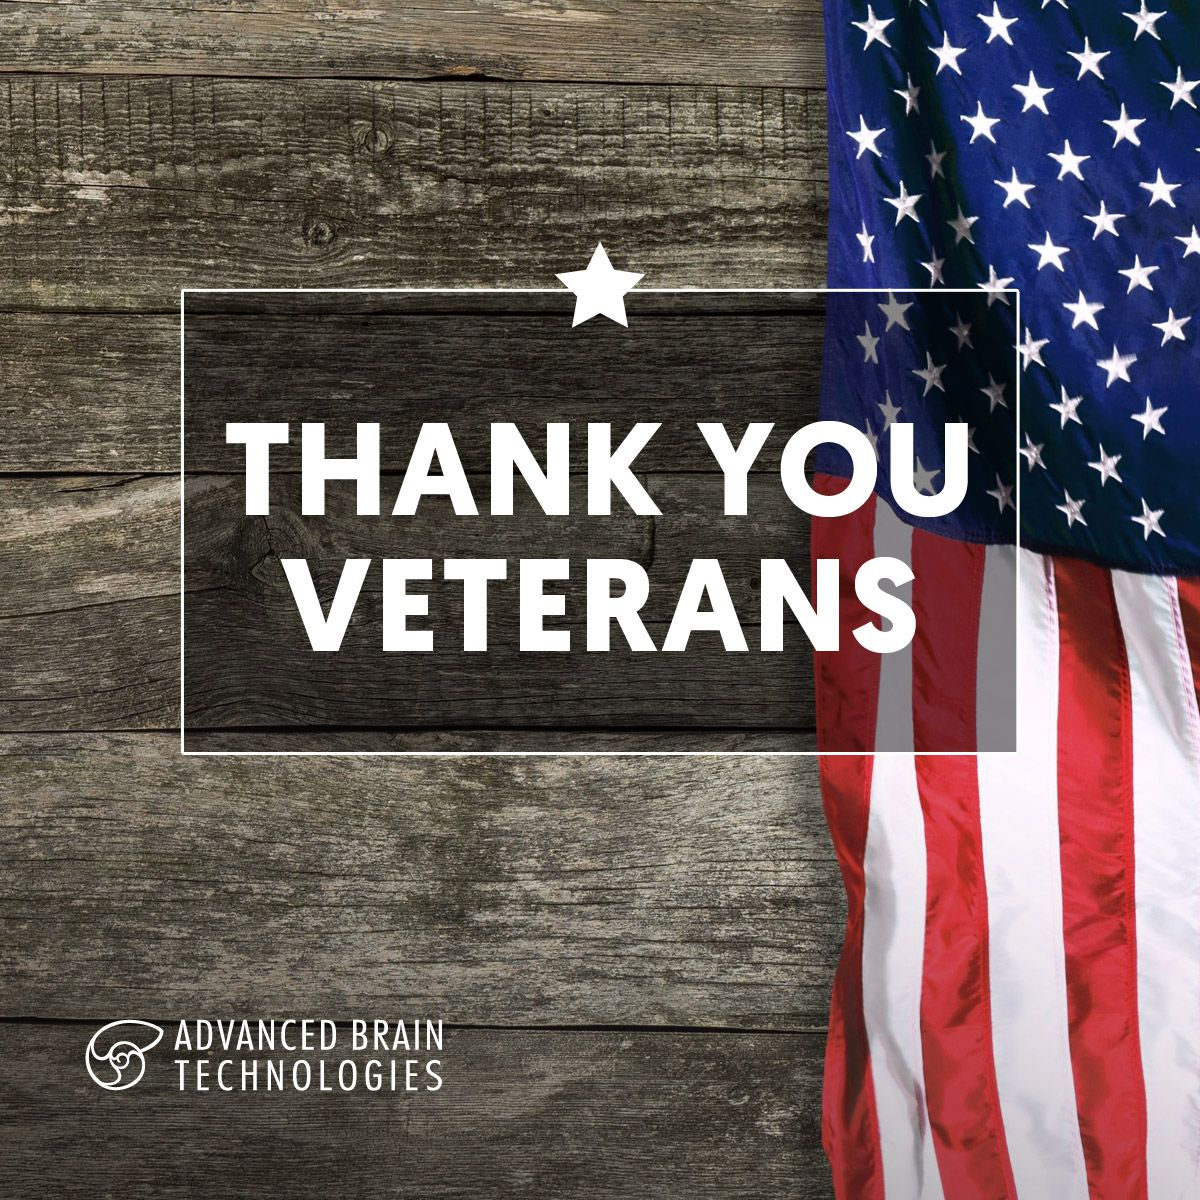 We Are Grateful For Your Service To The United States On Veterans